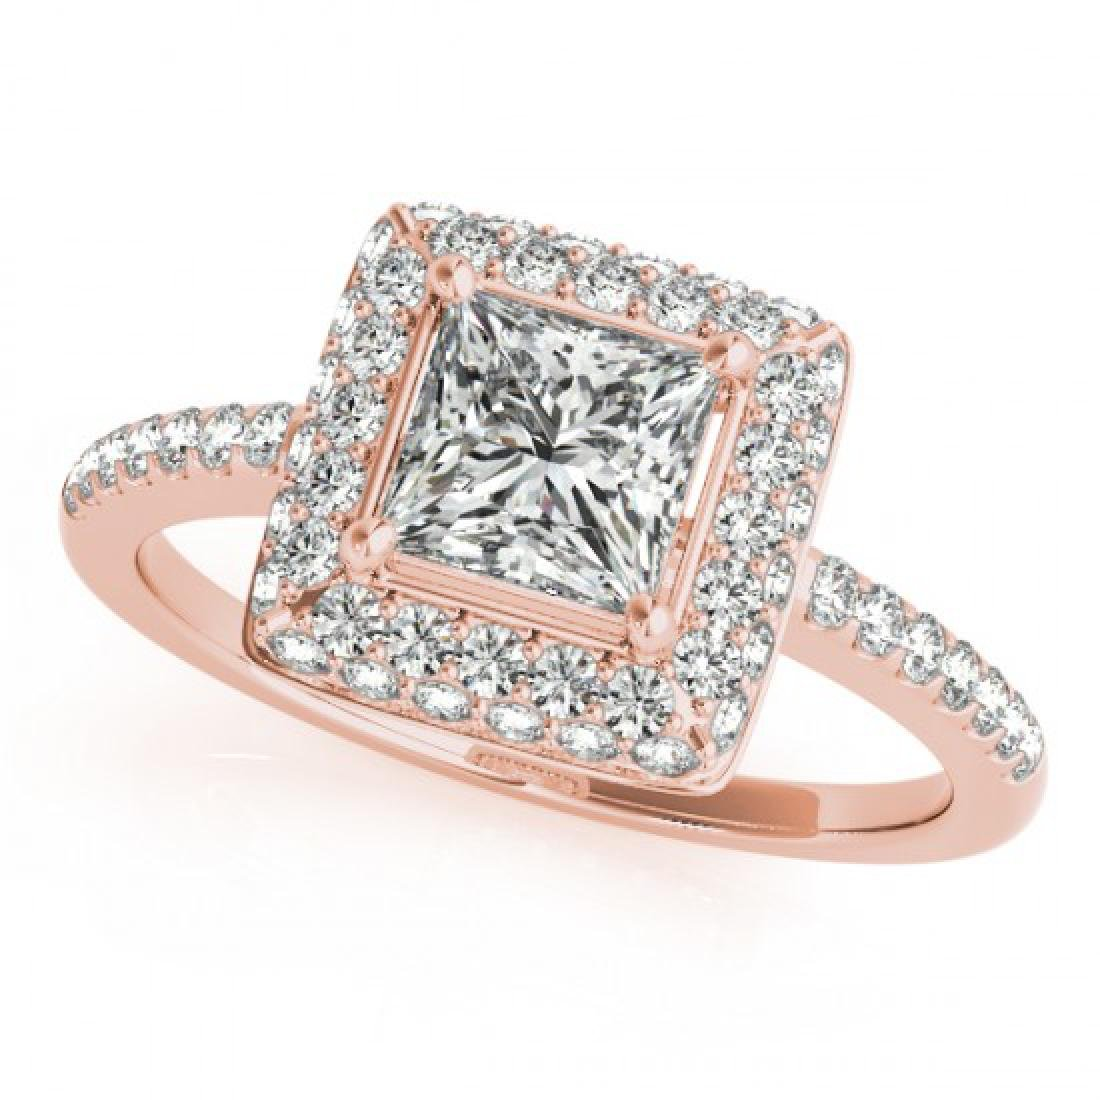 0.85 CTW Certified VS/SI Princess Diamond Solitaire